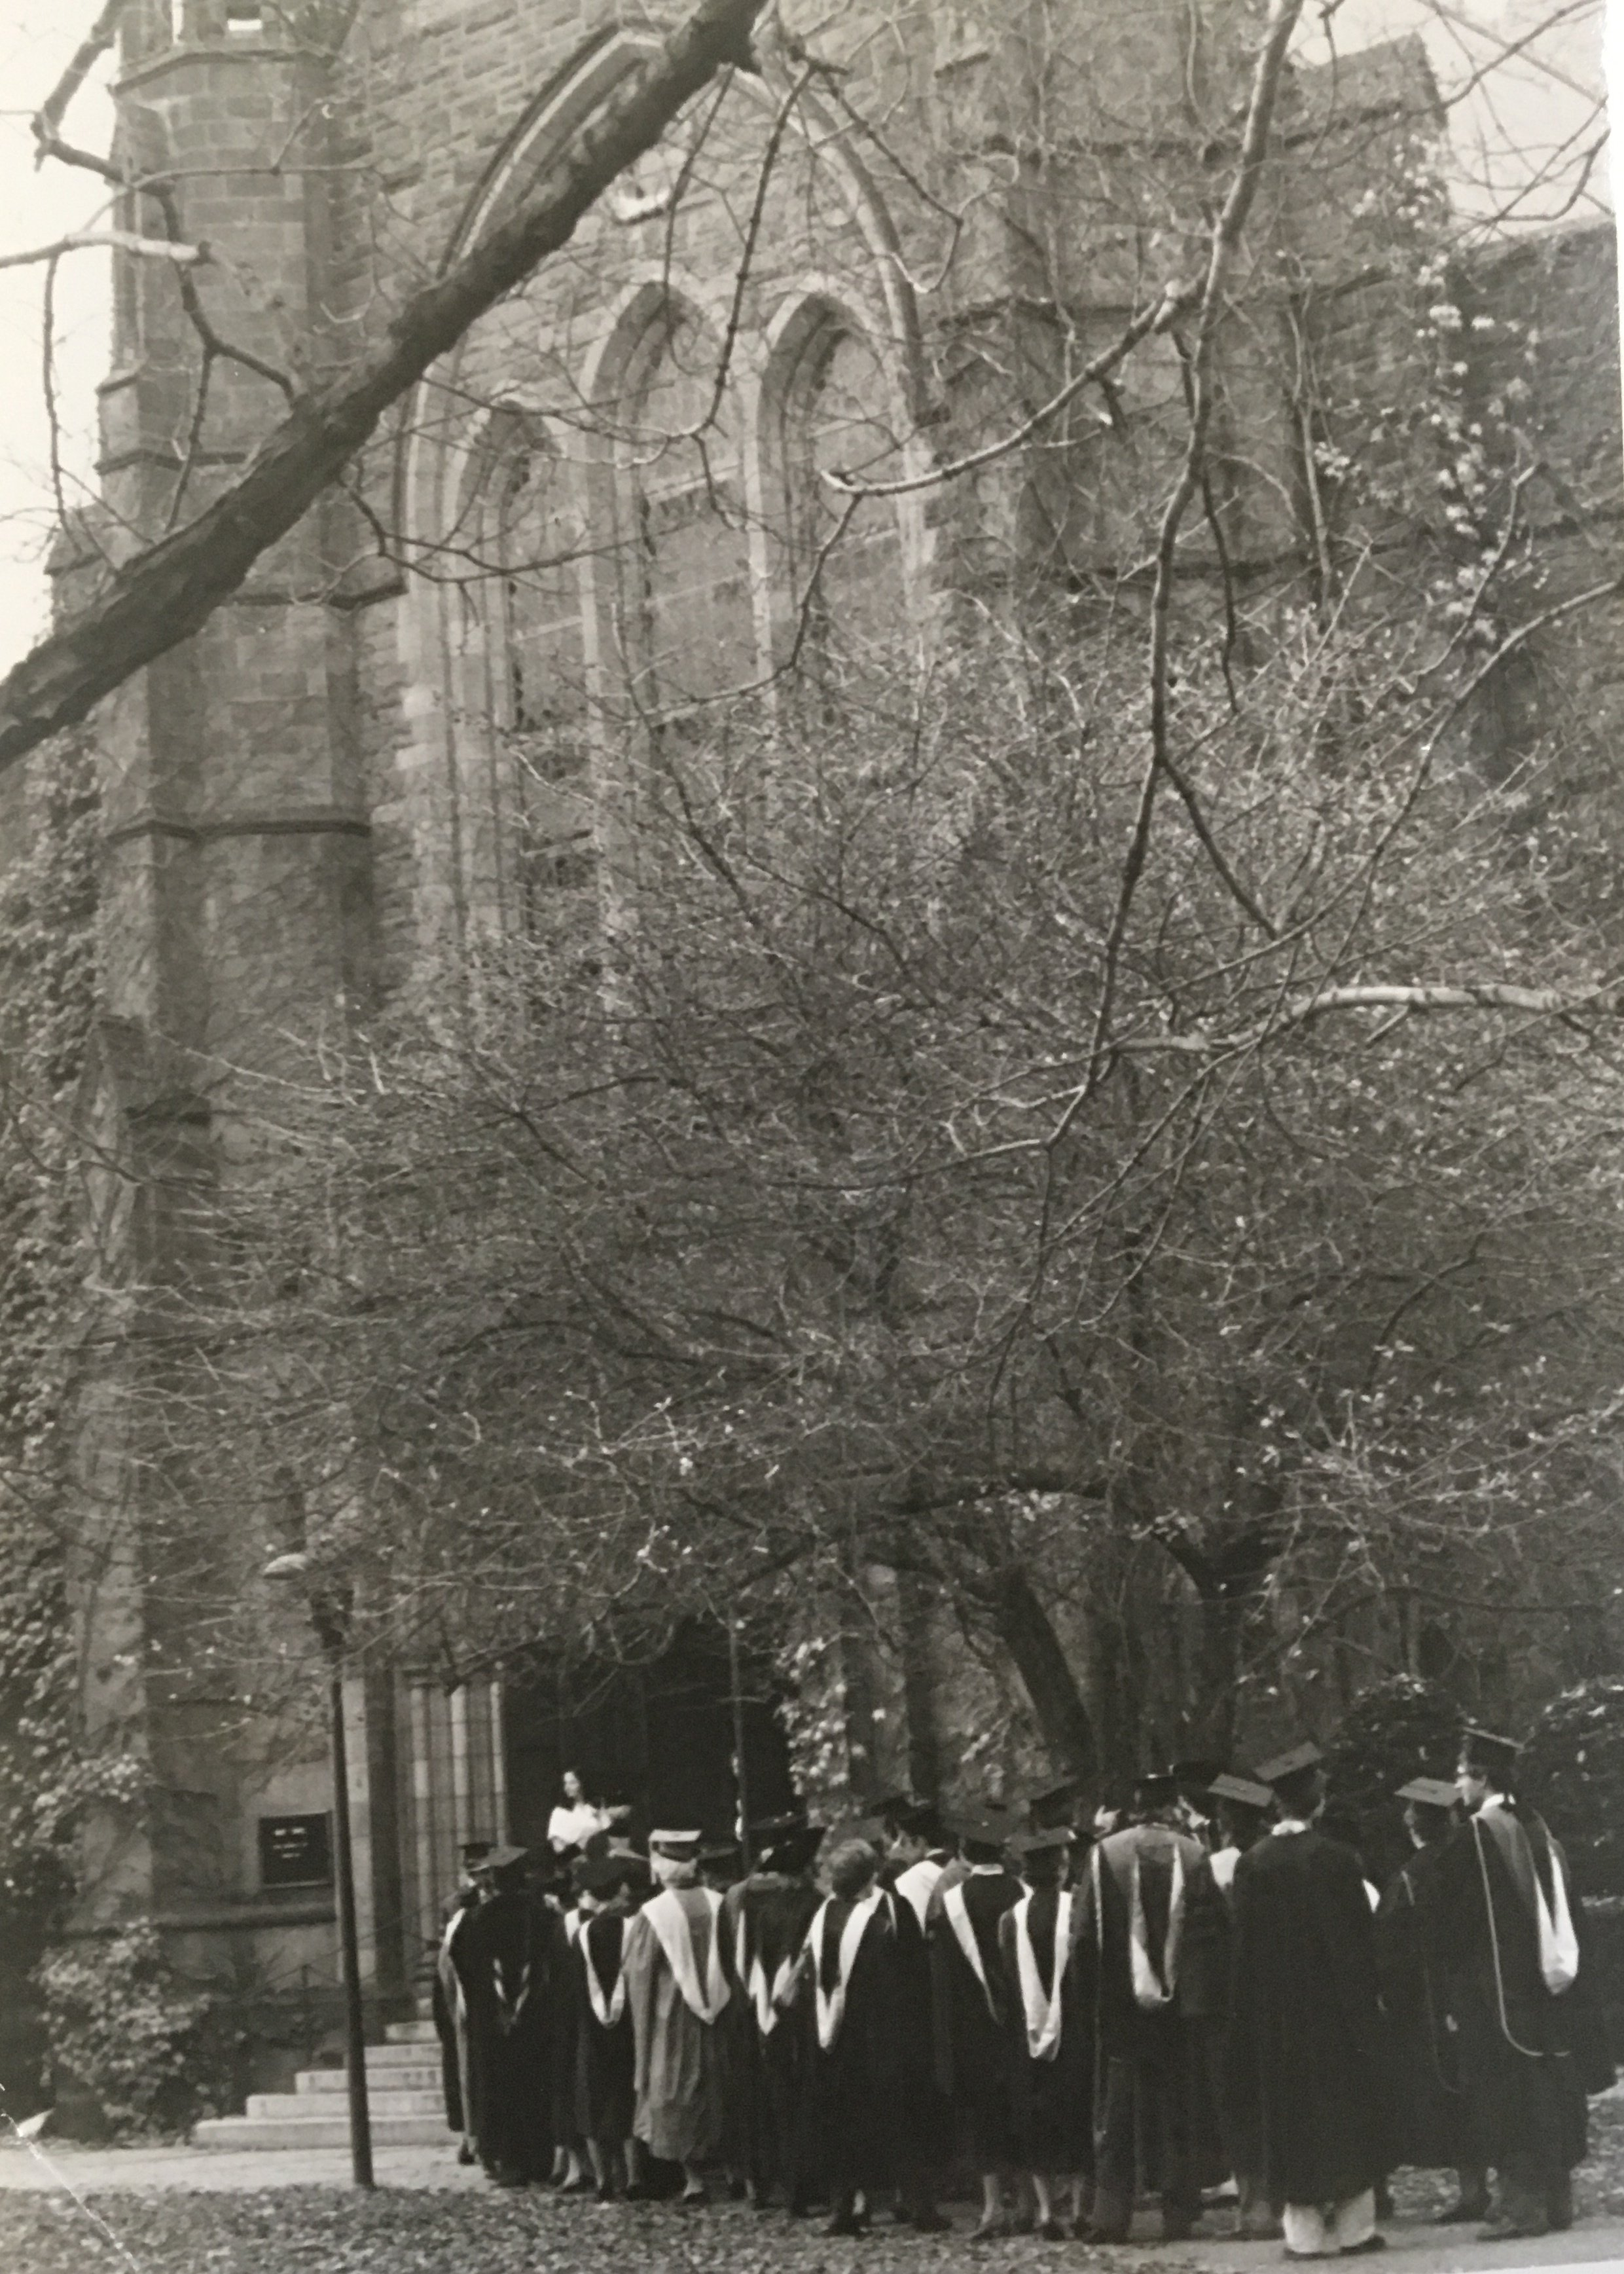 Convocation1930s1.jpg